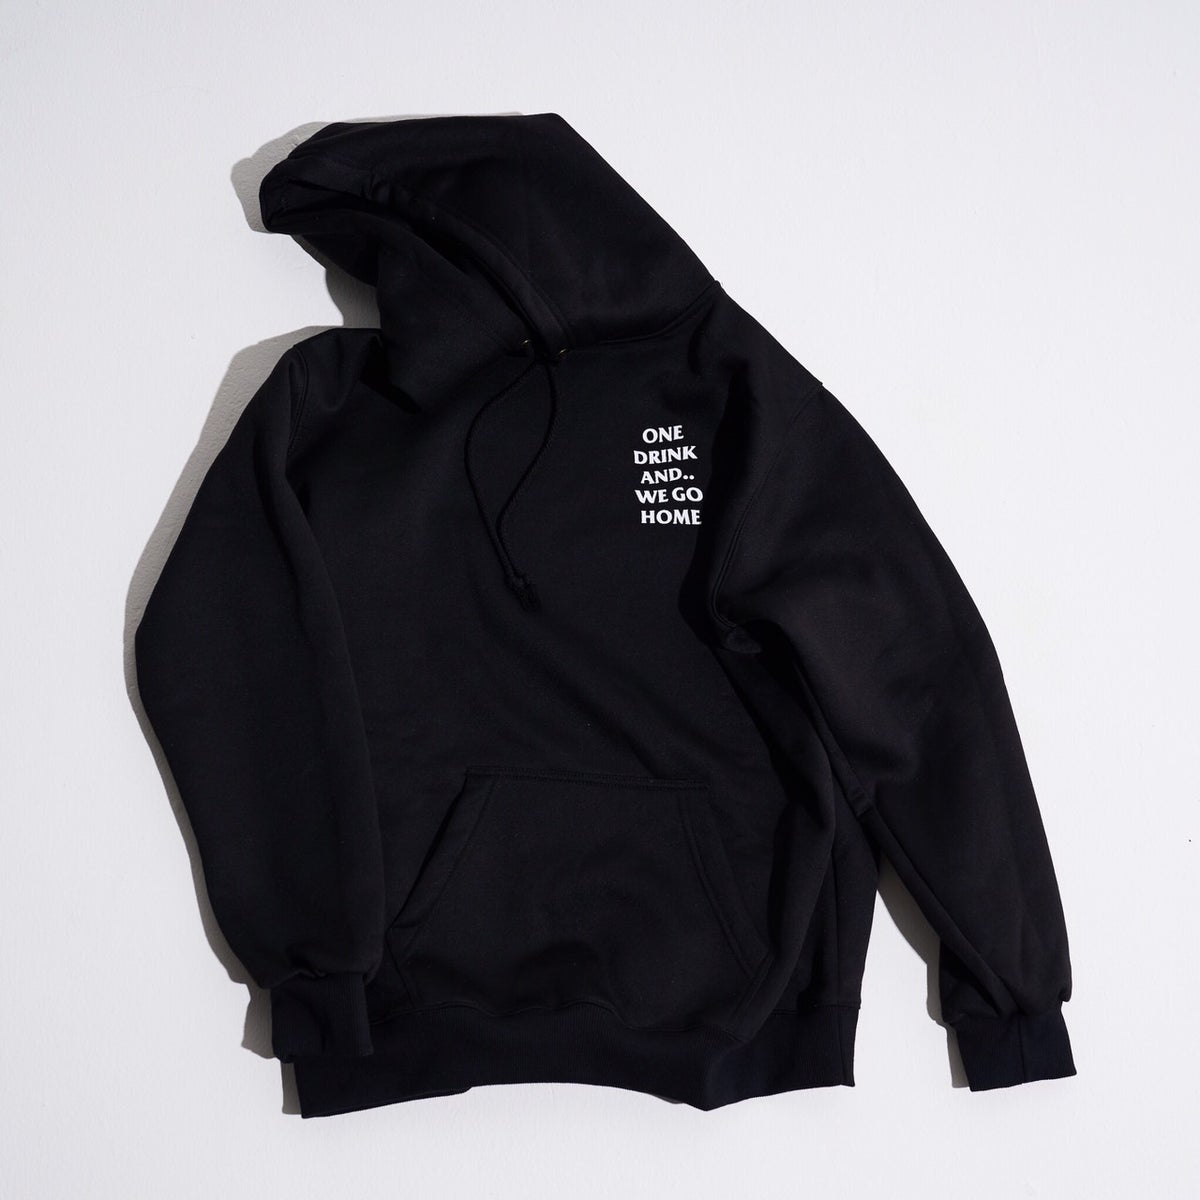 Image of ONEDRINK CLASSIC LOGO HOODIE BLACK/WHITE